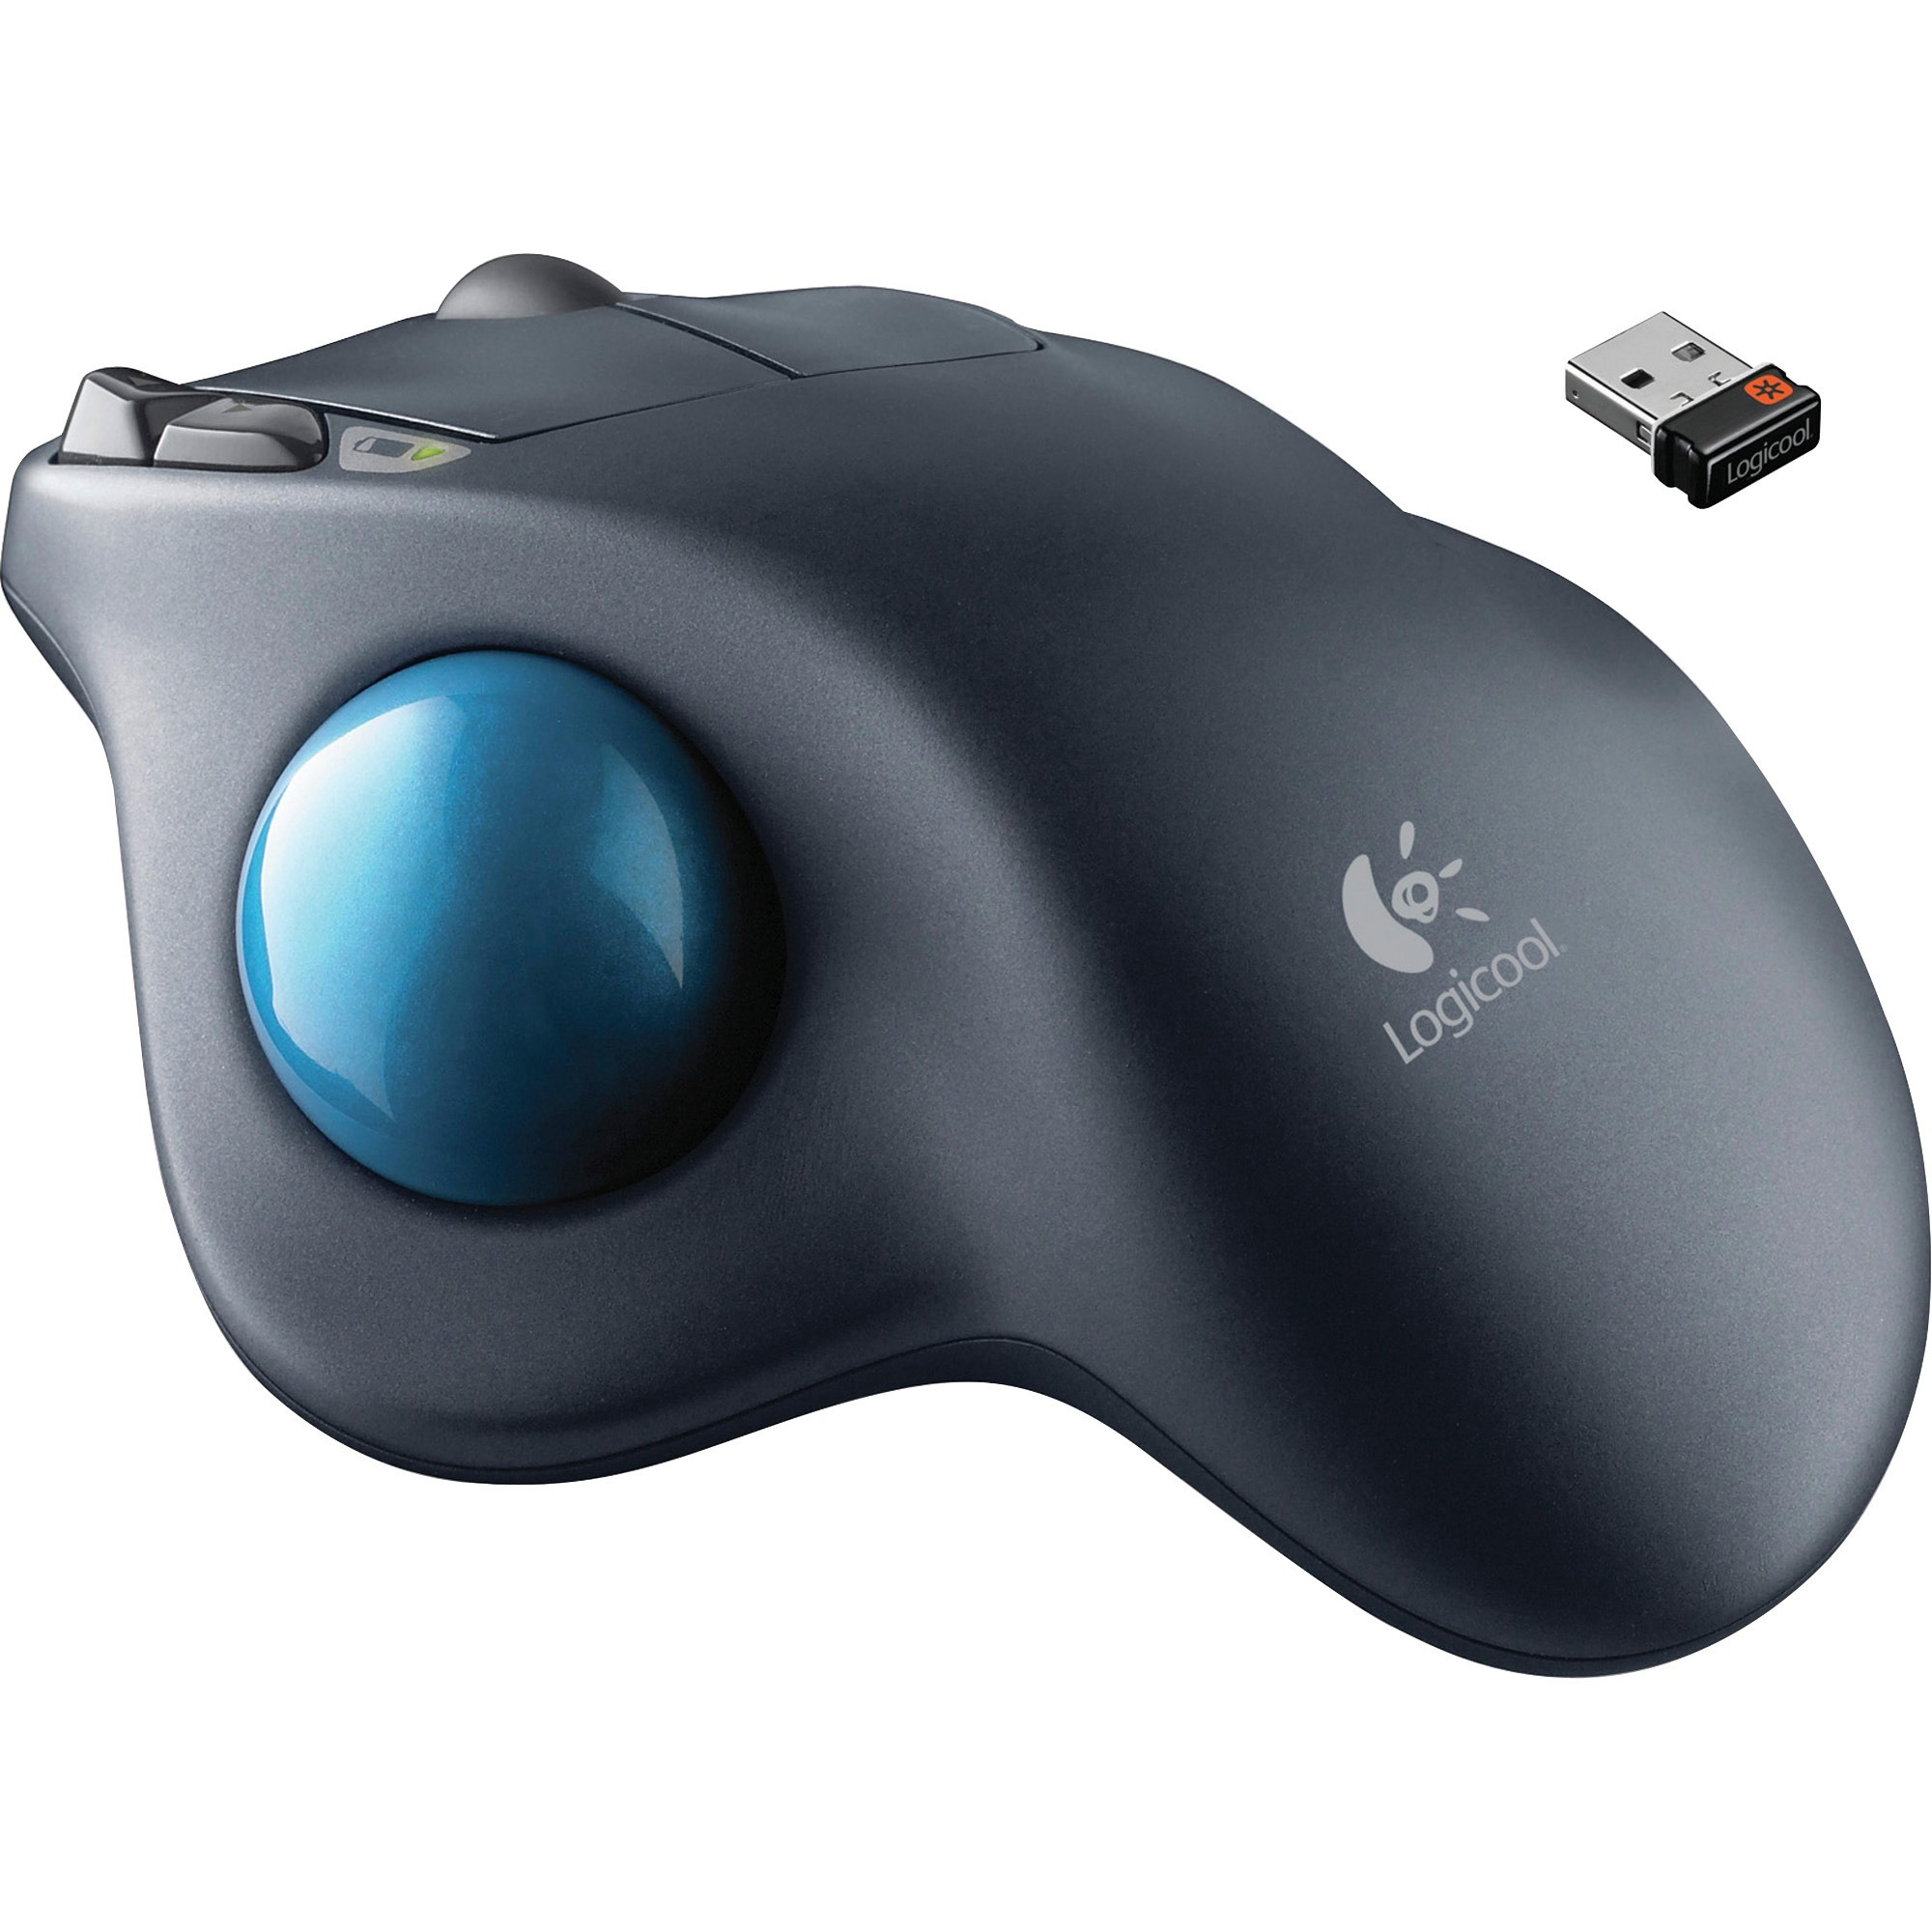 fe6e1af1525 Logitech M570 Wireless Trackball Mouse - Laser - Wireless - Radio Frequency  - Dark Gray - USB - Scroll Wheel